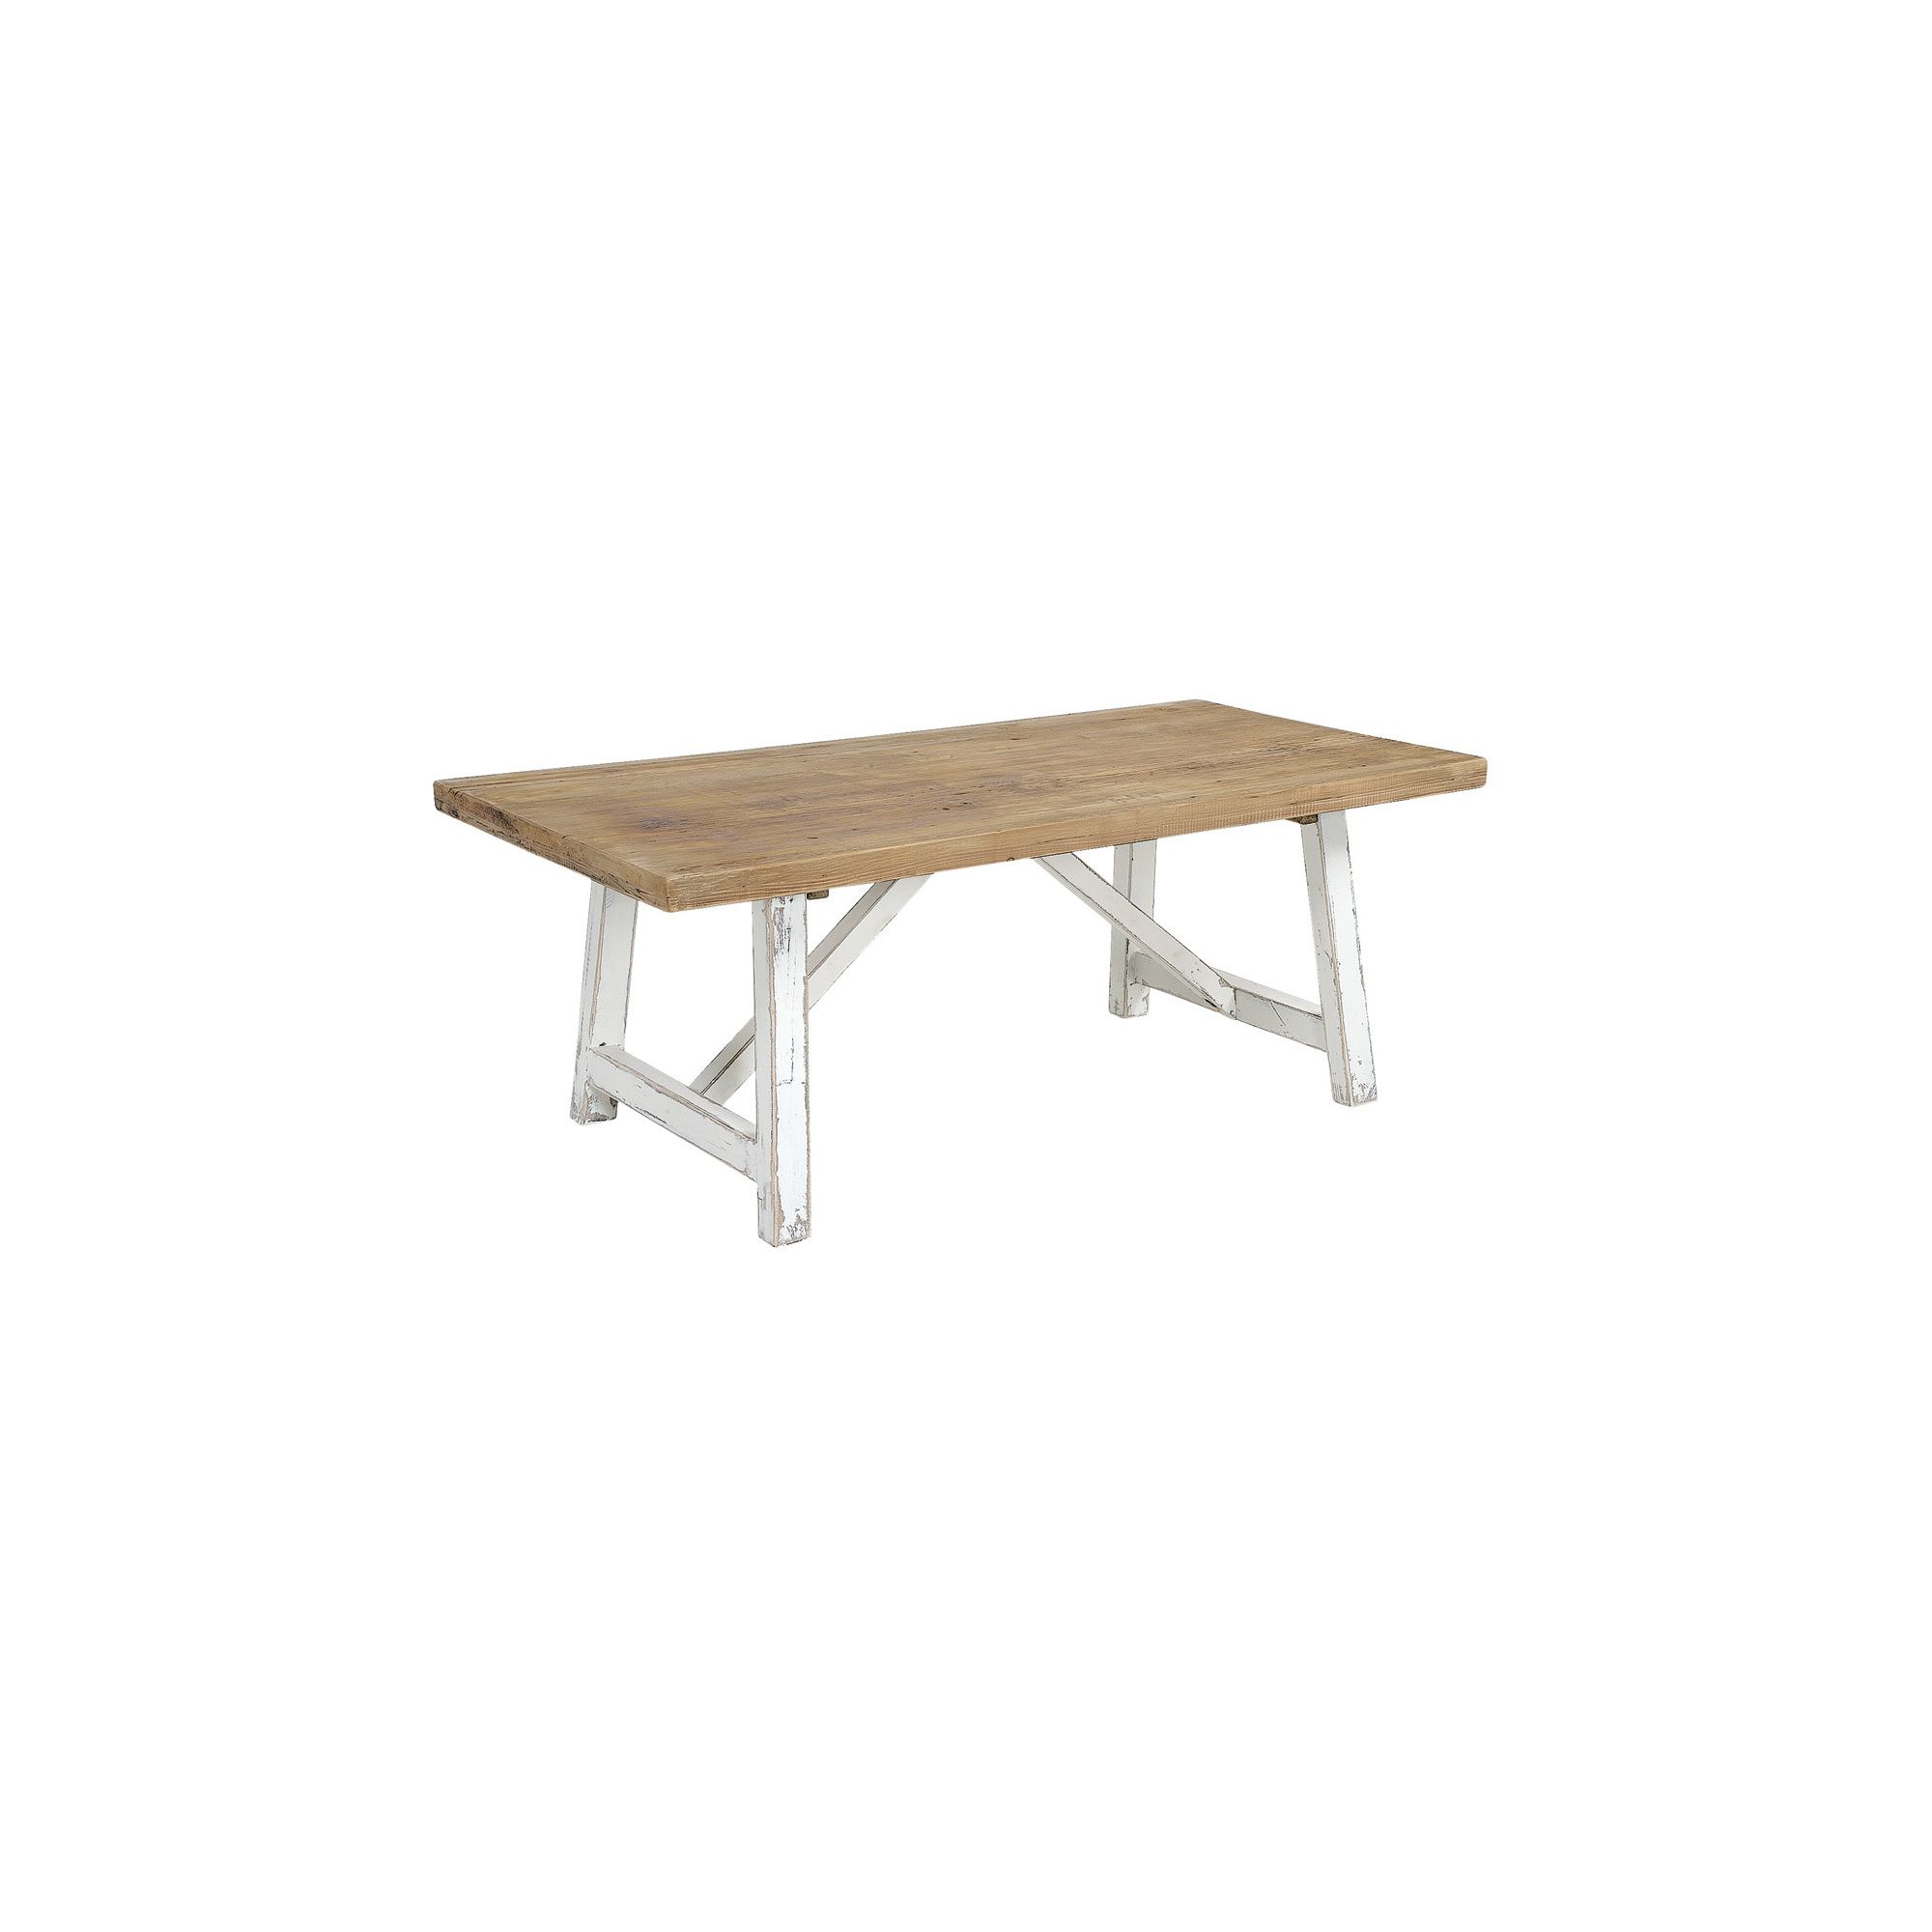 Rowico Aspen Coffee Table - White Distress Painted at Tescos Direct